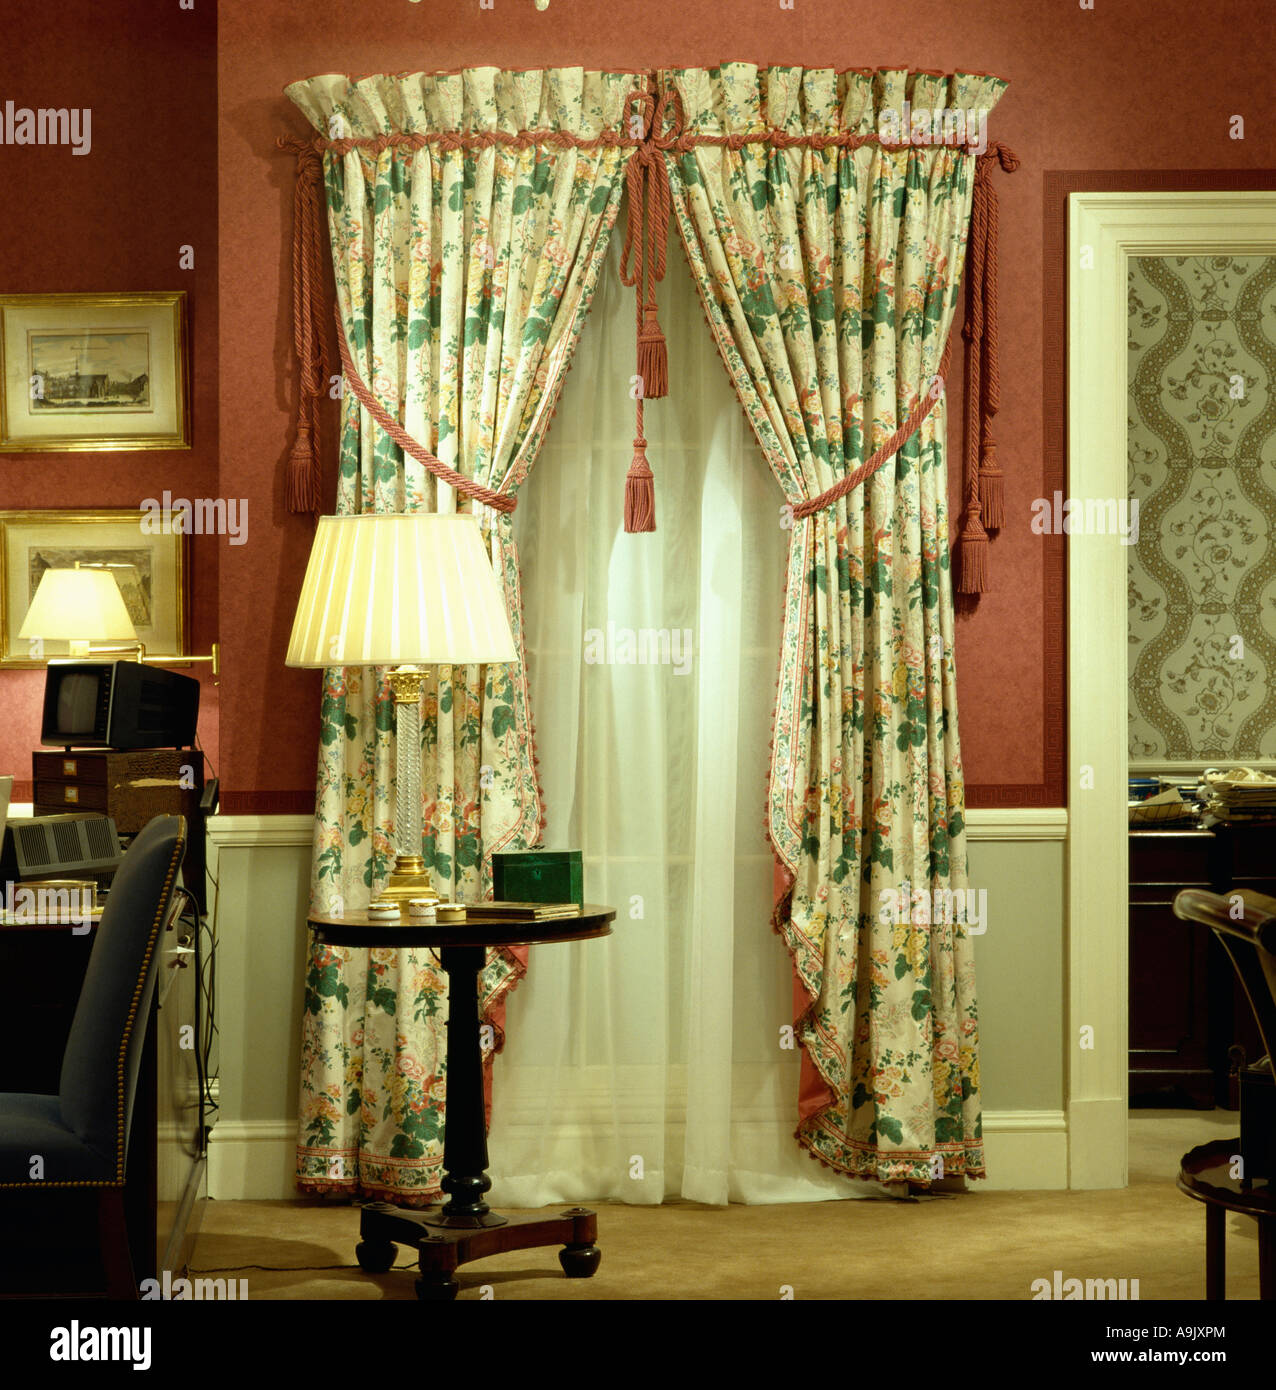 Red patterned curtains - Green And White Patterned Curtains With Red Trimmings Over White Voile Curtains Against Red Wall